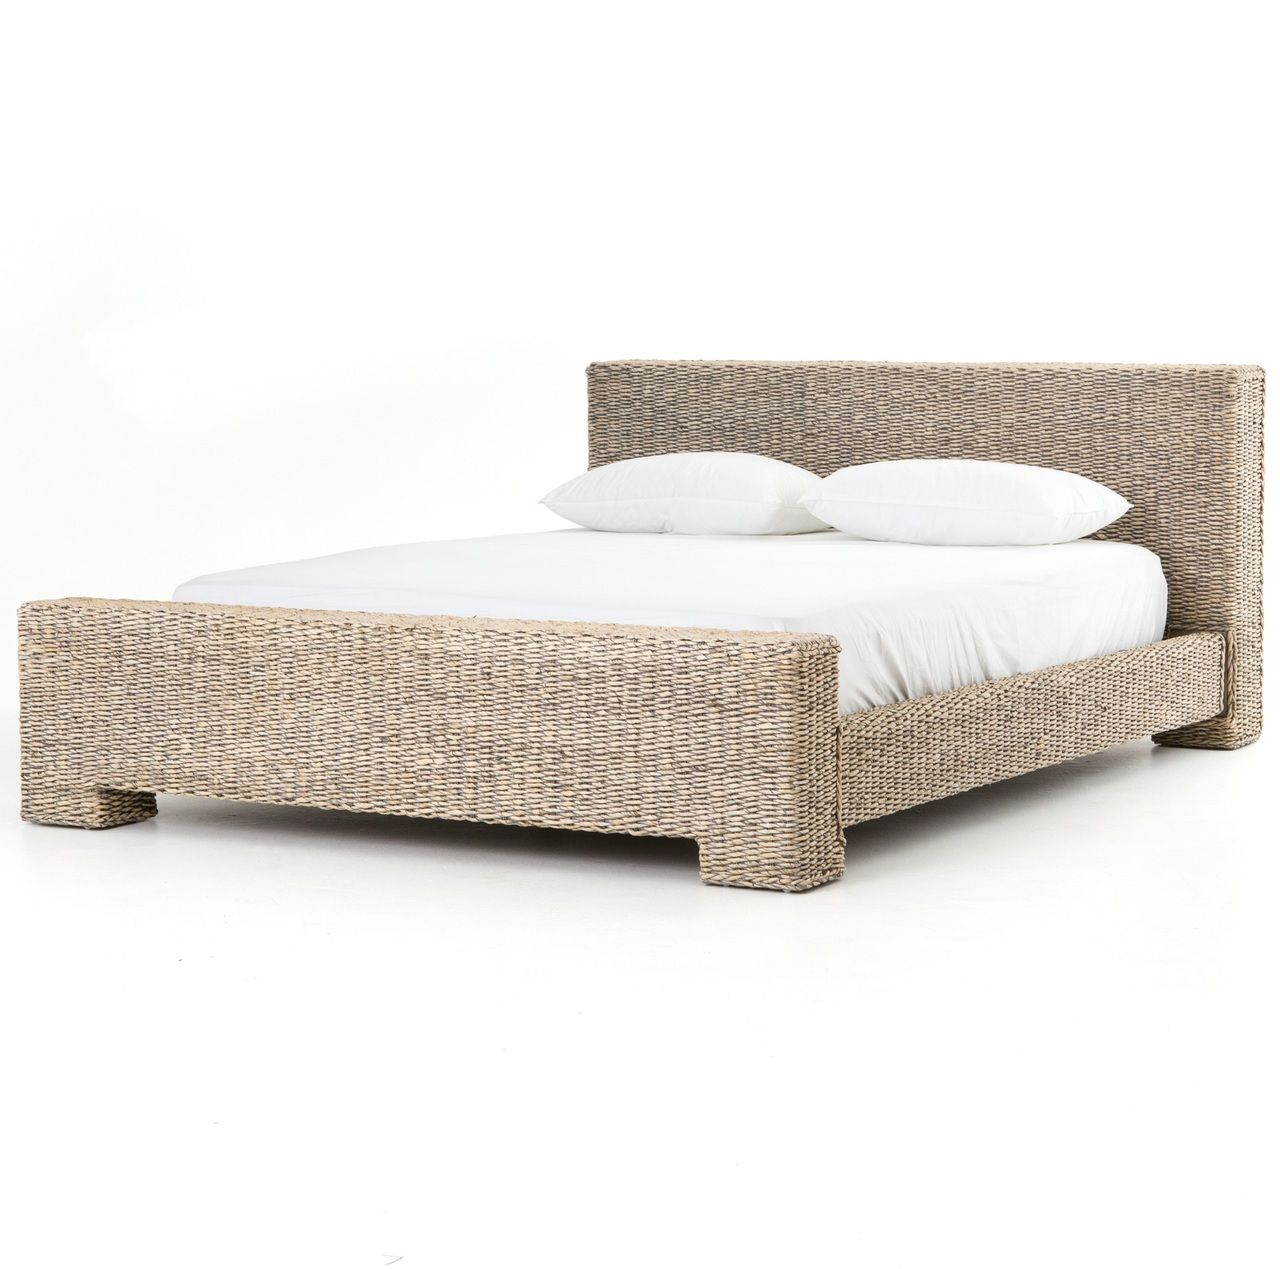 Bali Woven Rattan Queen Platform Bed - Gray Abaca (https://www ...